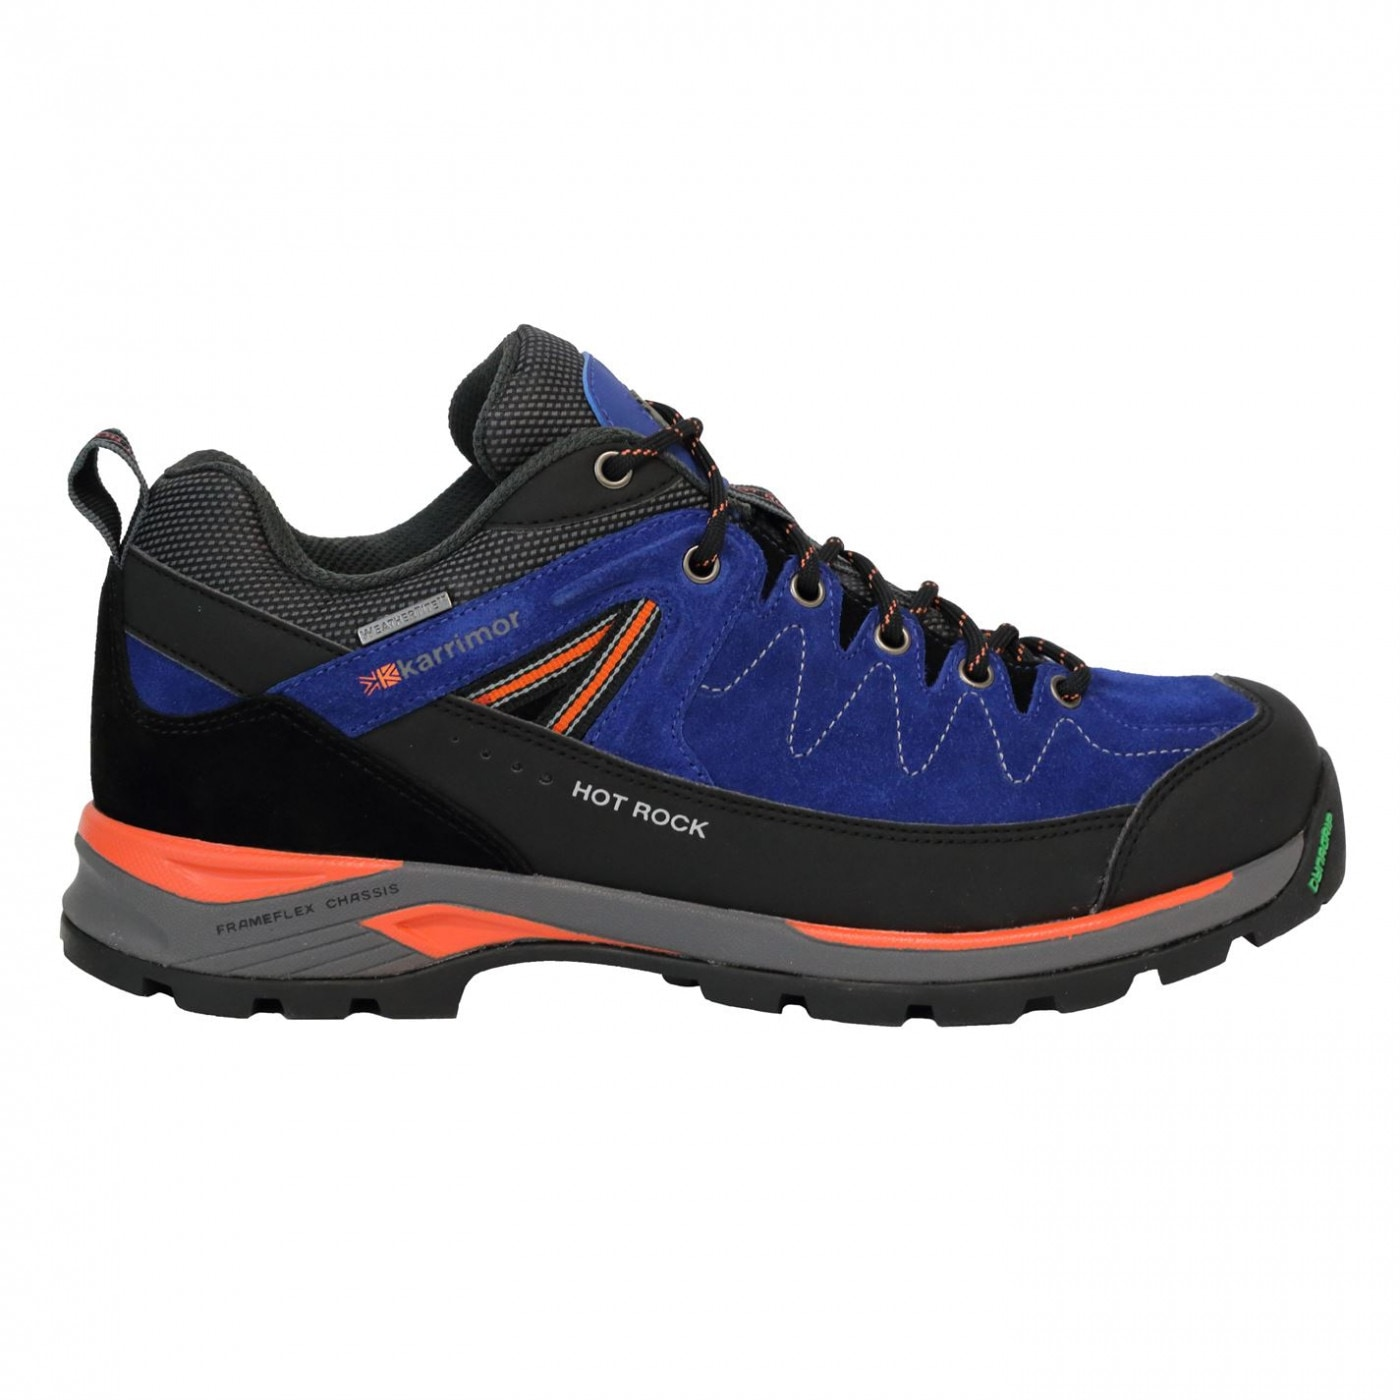 Karrimor Hot Rock Low Mens Walking Shoes